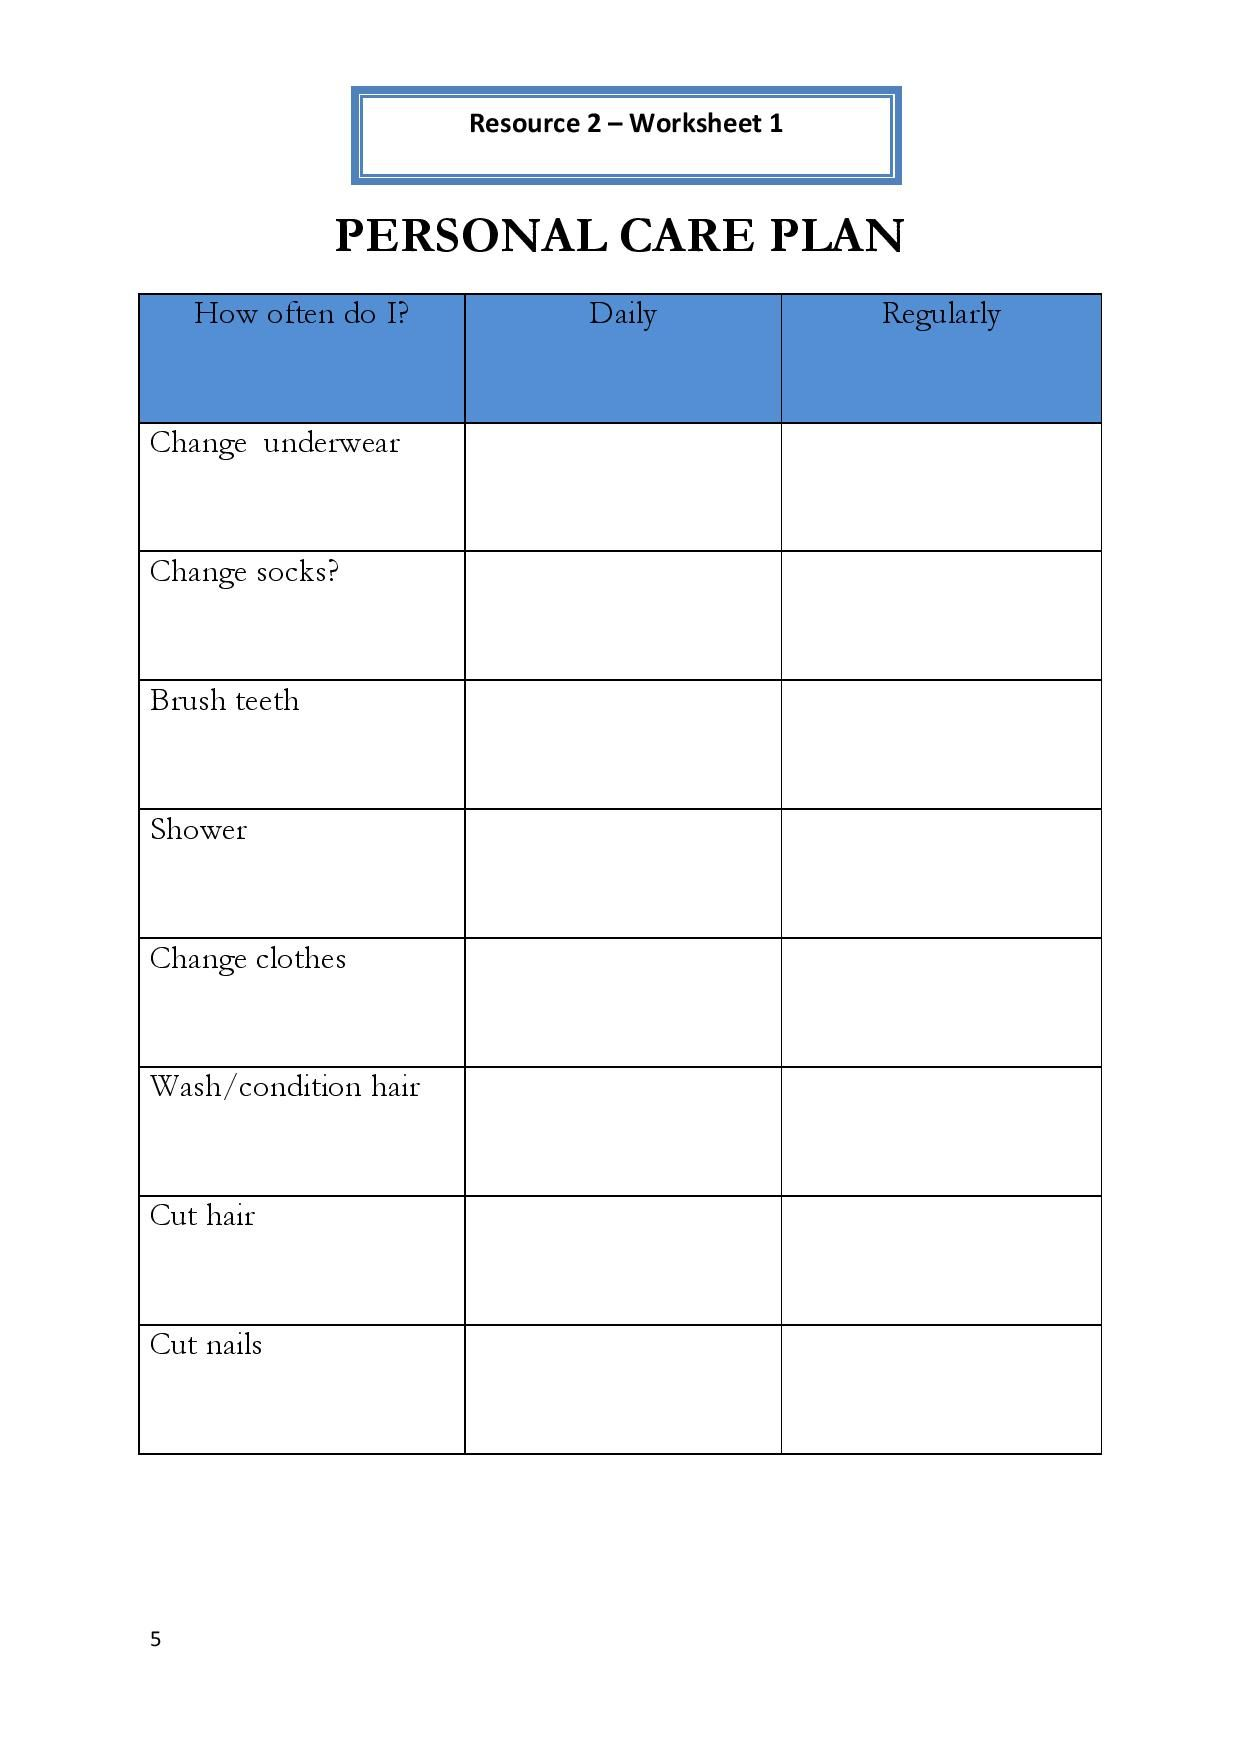 Printables Hygiene Worksheets For Elementary Students personal hygiene worksheets for kids level 2 5 worksheet 1